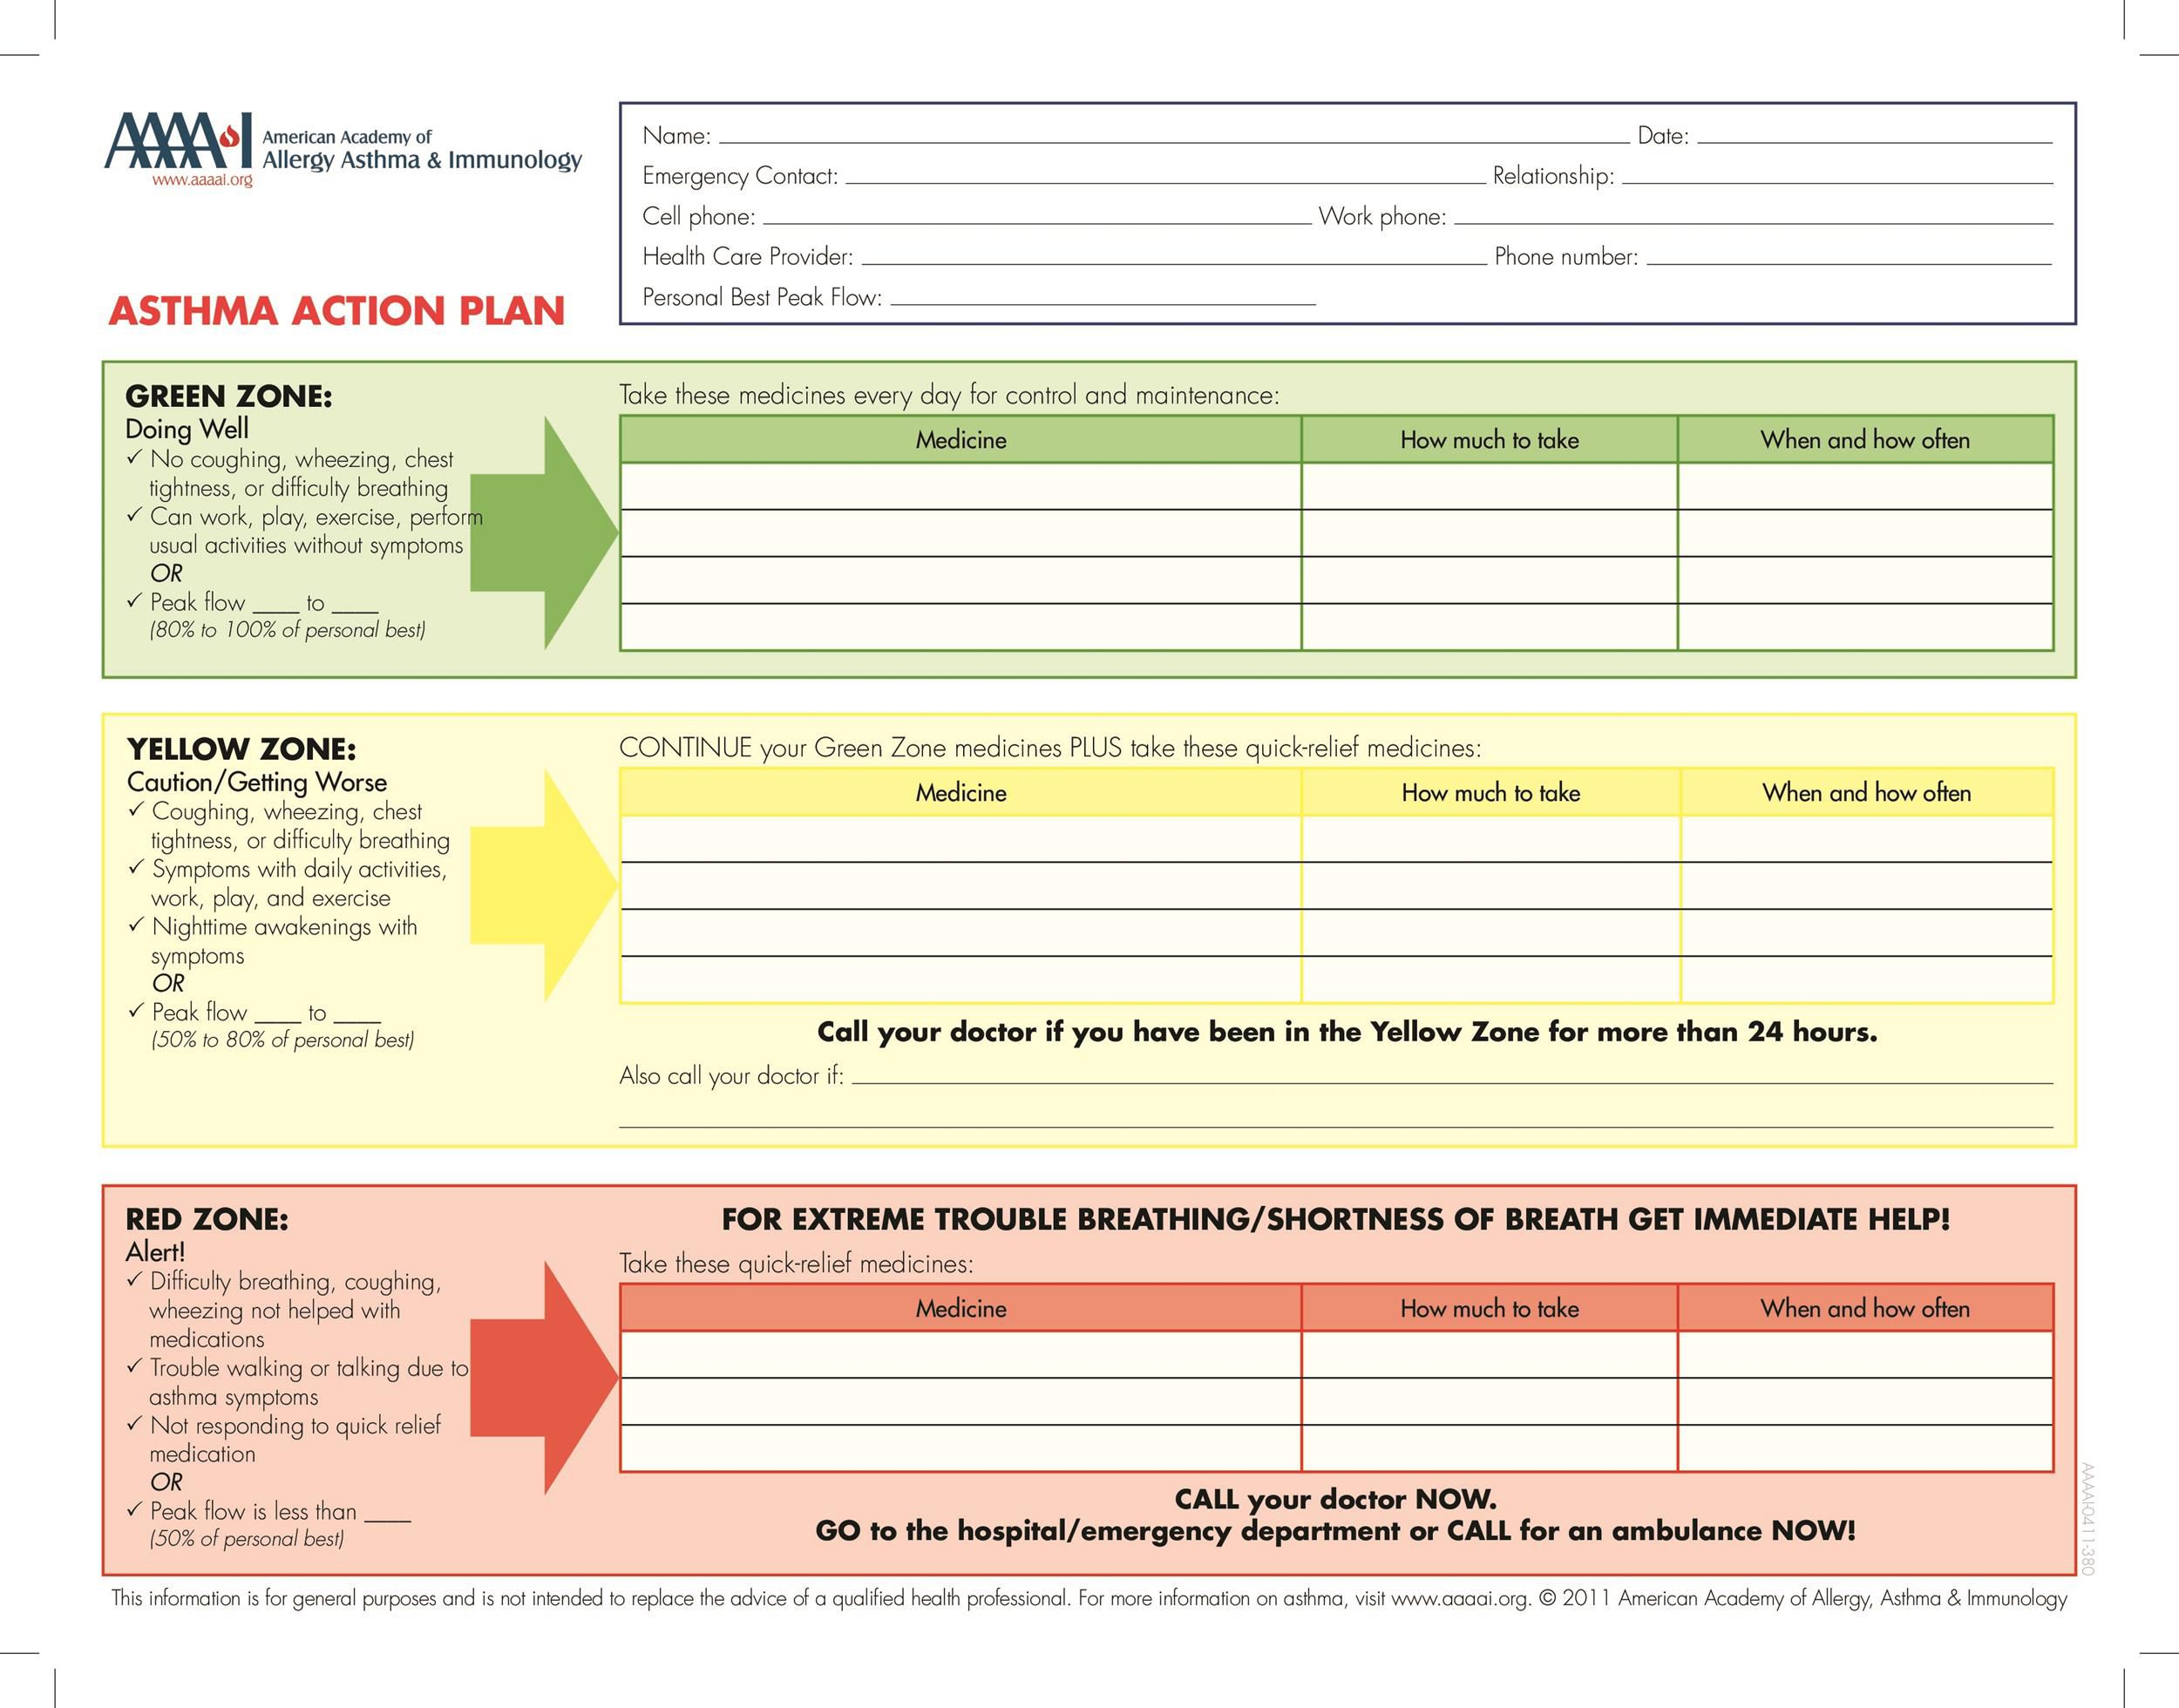 003 Fearsome Smart Action Plan Template High Def  Download Nh Example FreeFull